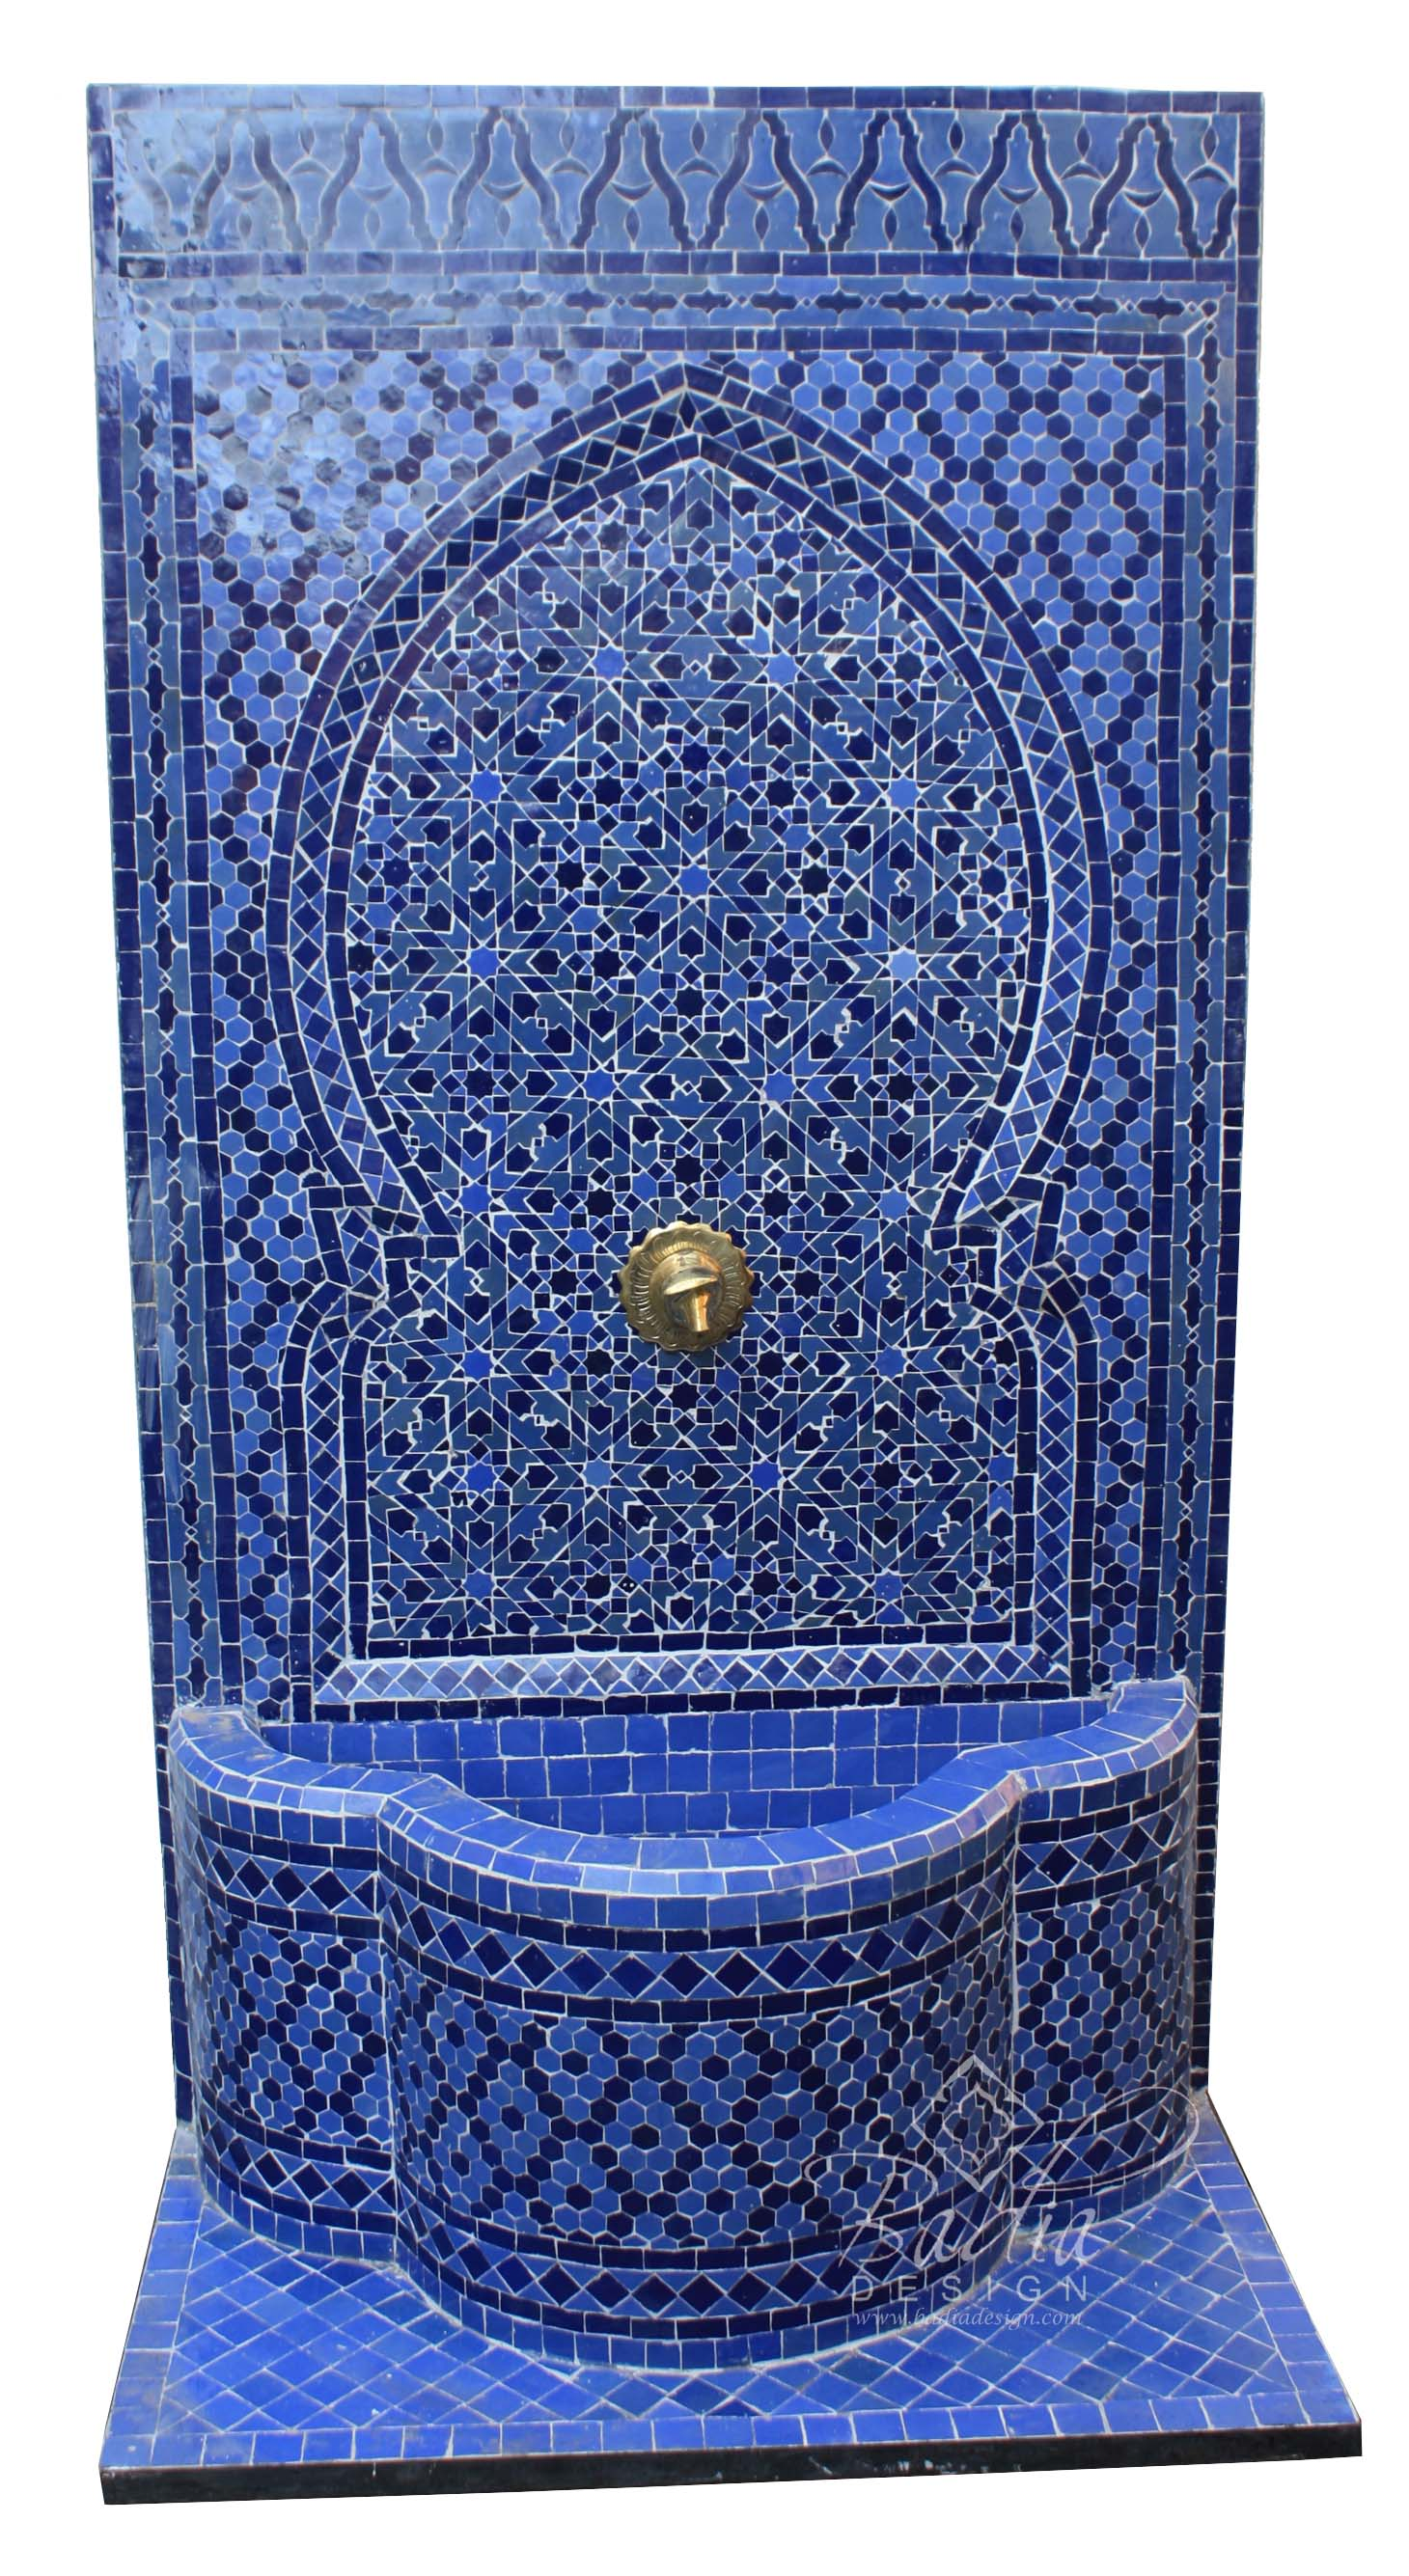 blue-moroccan-tile-water-fountain-mf672-1.jpg